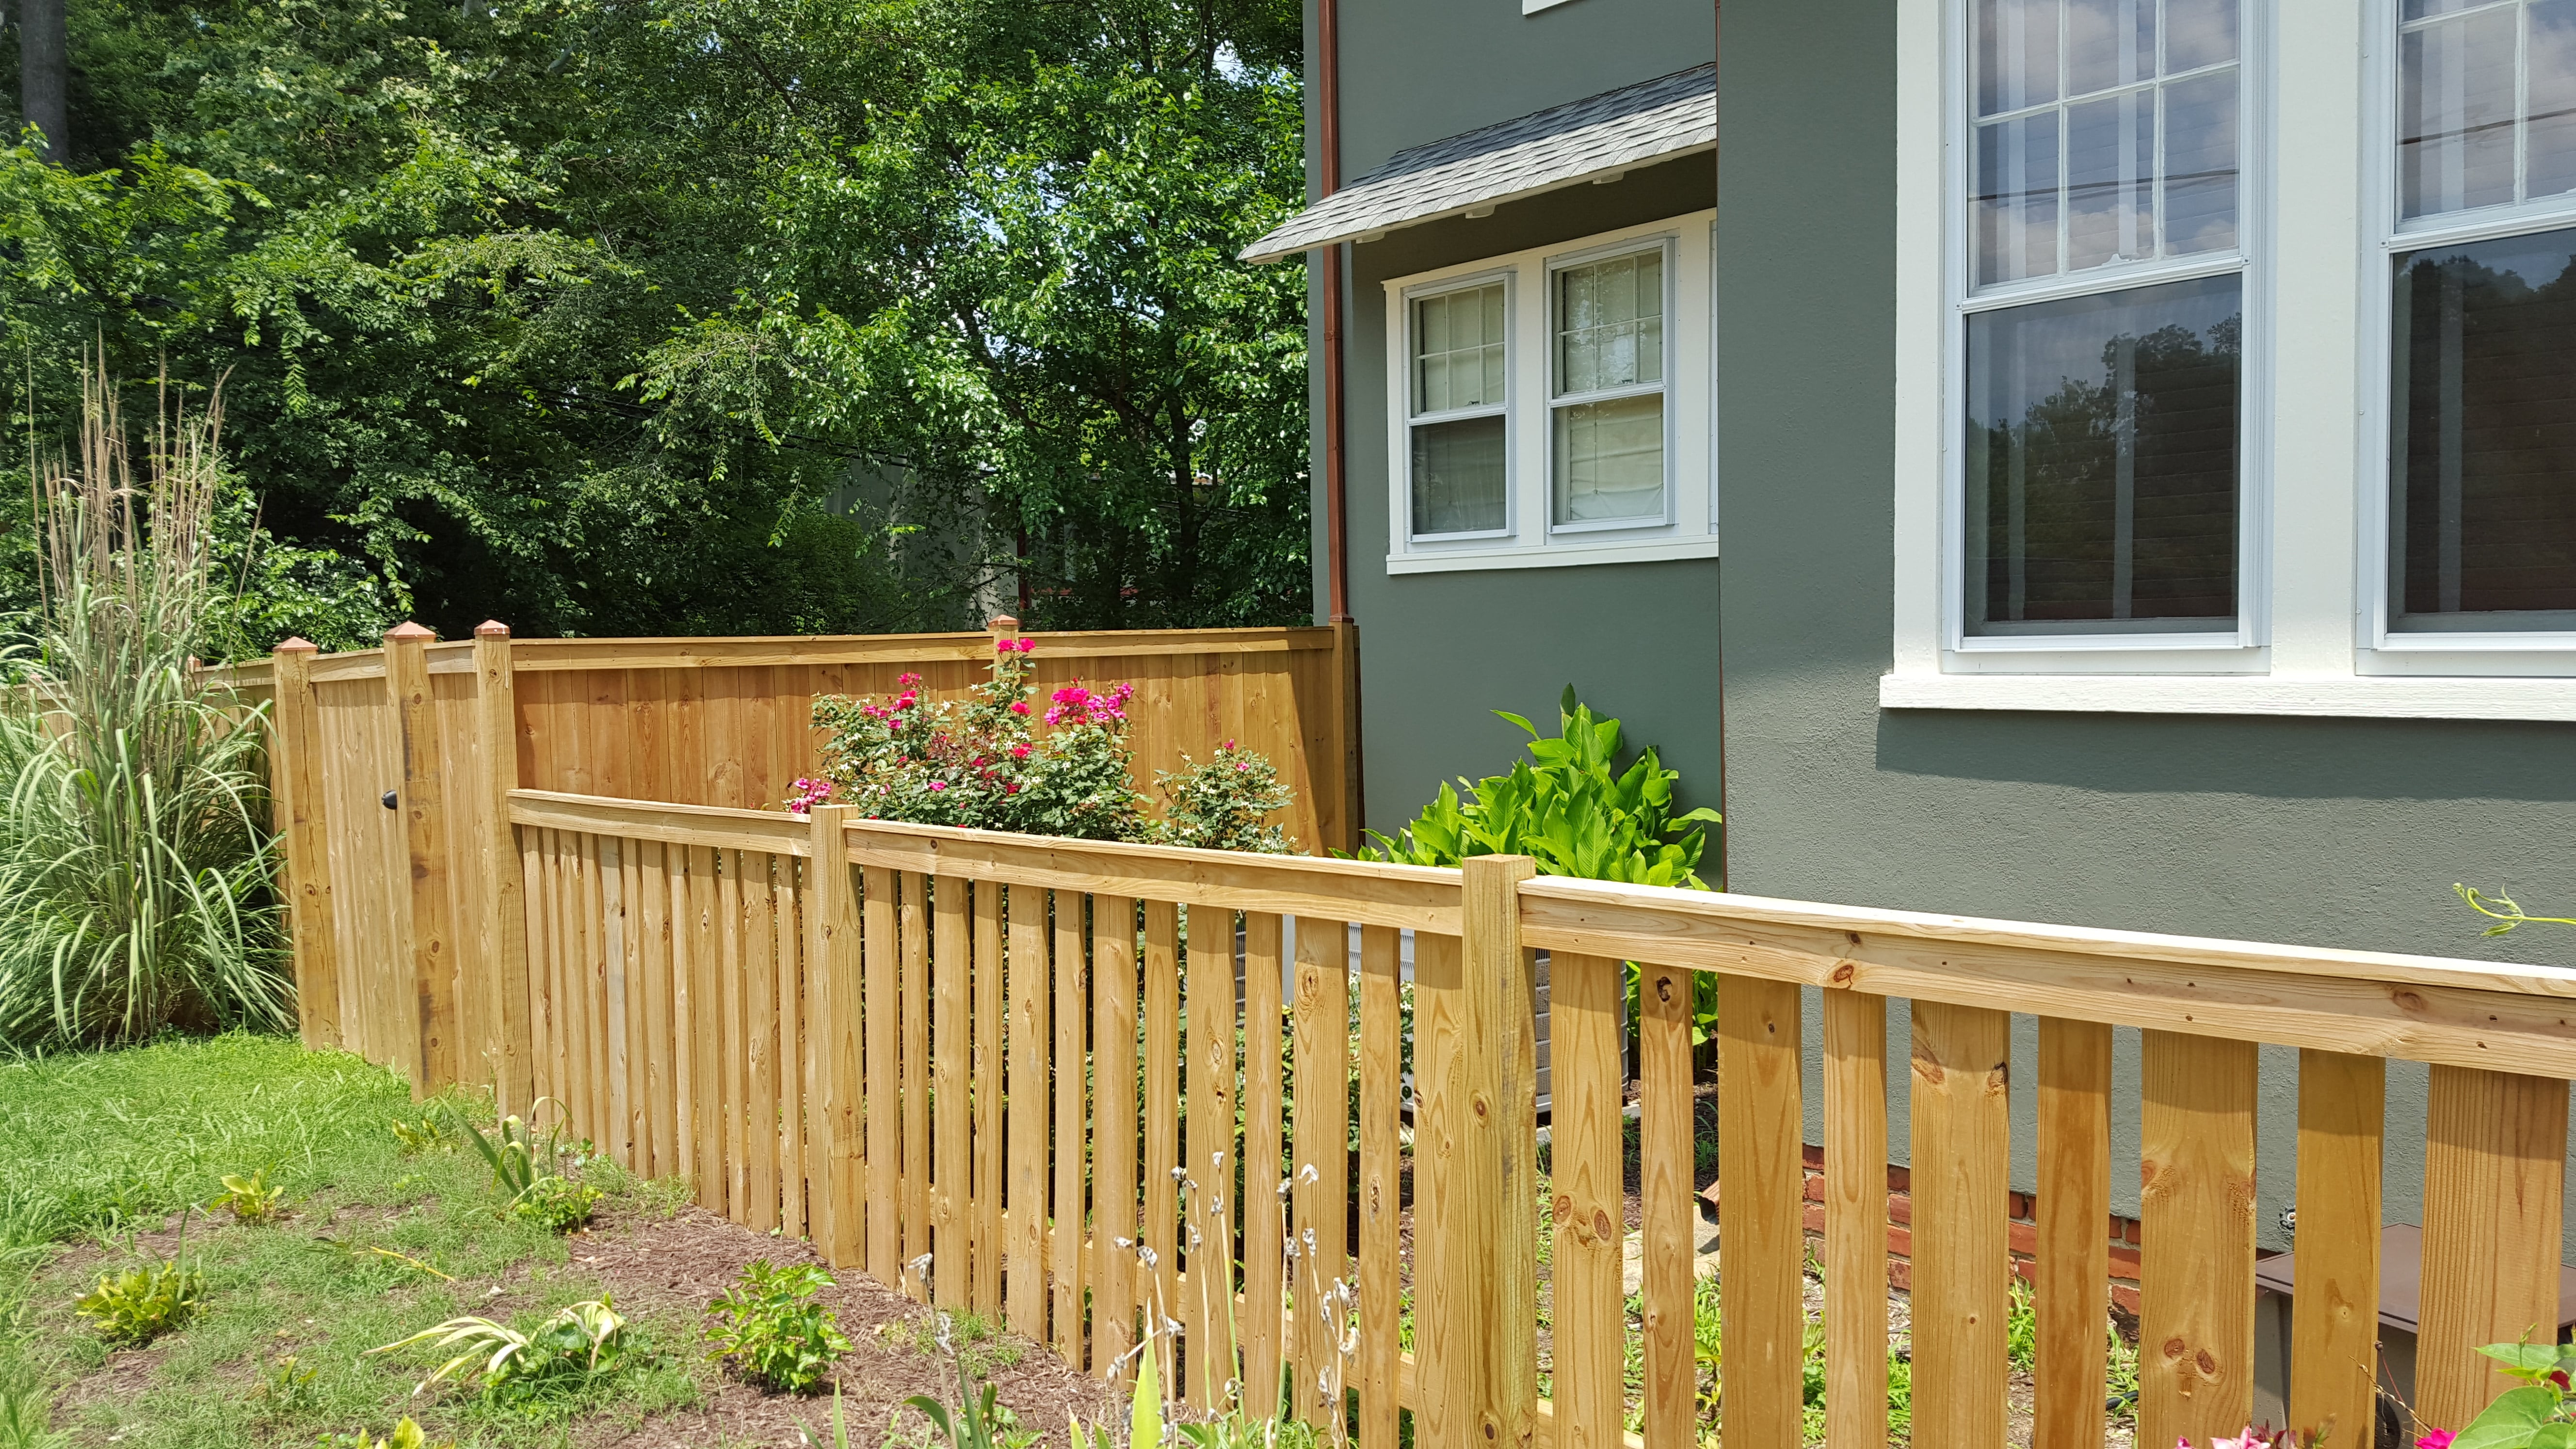 A beautiful custom alternating pickett wood fence adorns this recent renovation on Semmes avenue in Richmond's Forest Hill district.